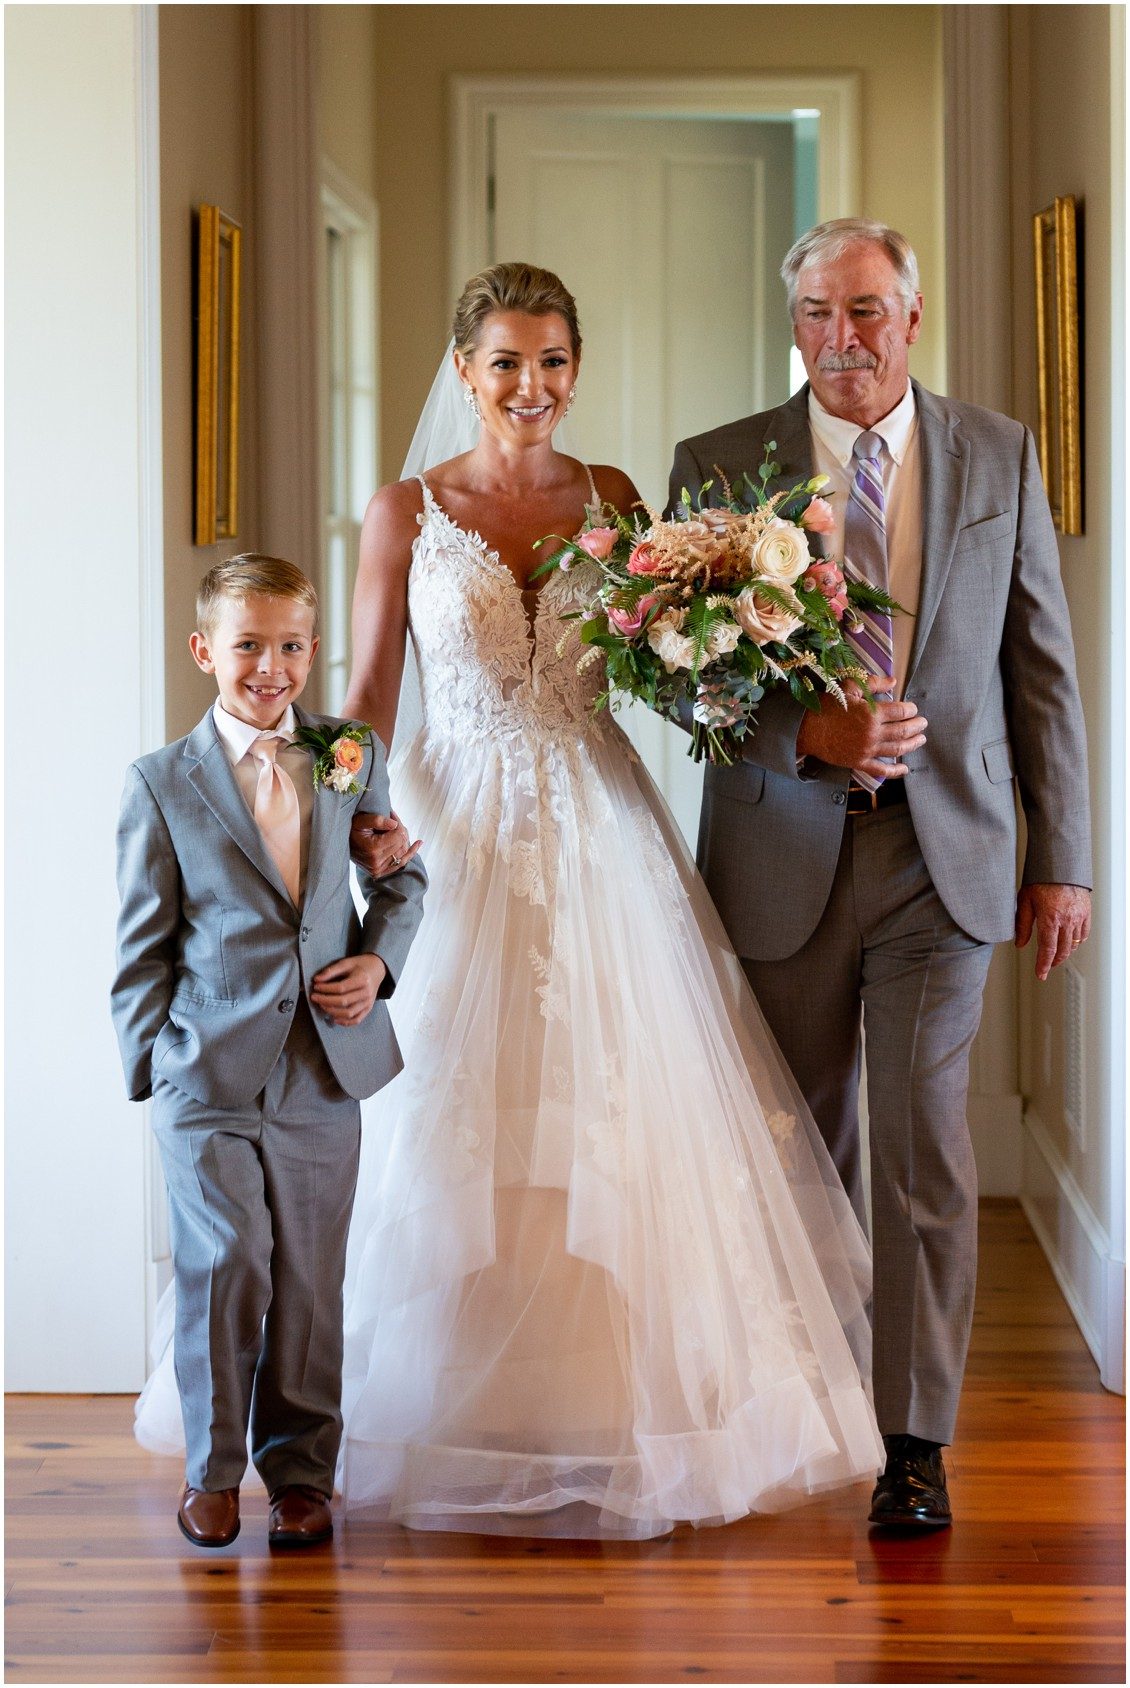 Bride walking up aisle with dad and son at elegant and intimate at-home wedding | My Eastern Shore Wedding | Melissa Grimes-Guy Photography